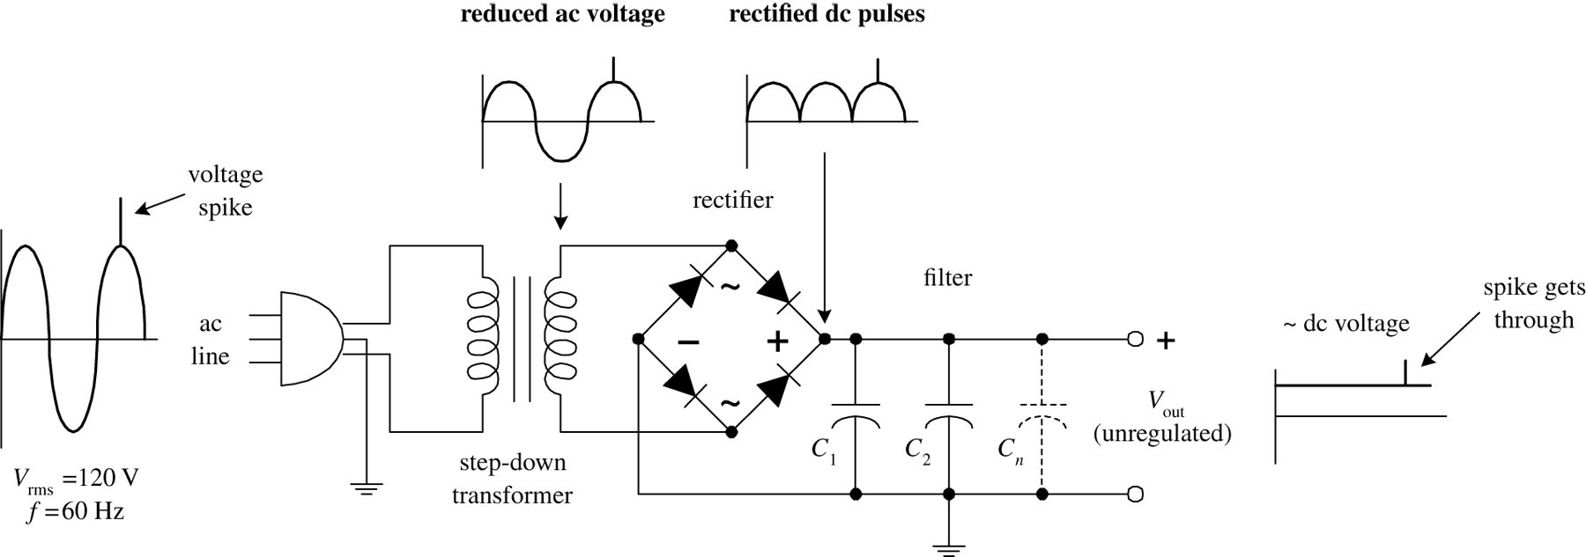 Voltage Regulators And Power Supplies Practical Electronics For Full Wave Rectifier Circuit With Averaging Filter Pictures Img